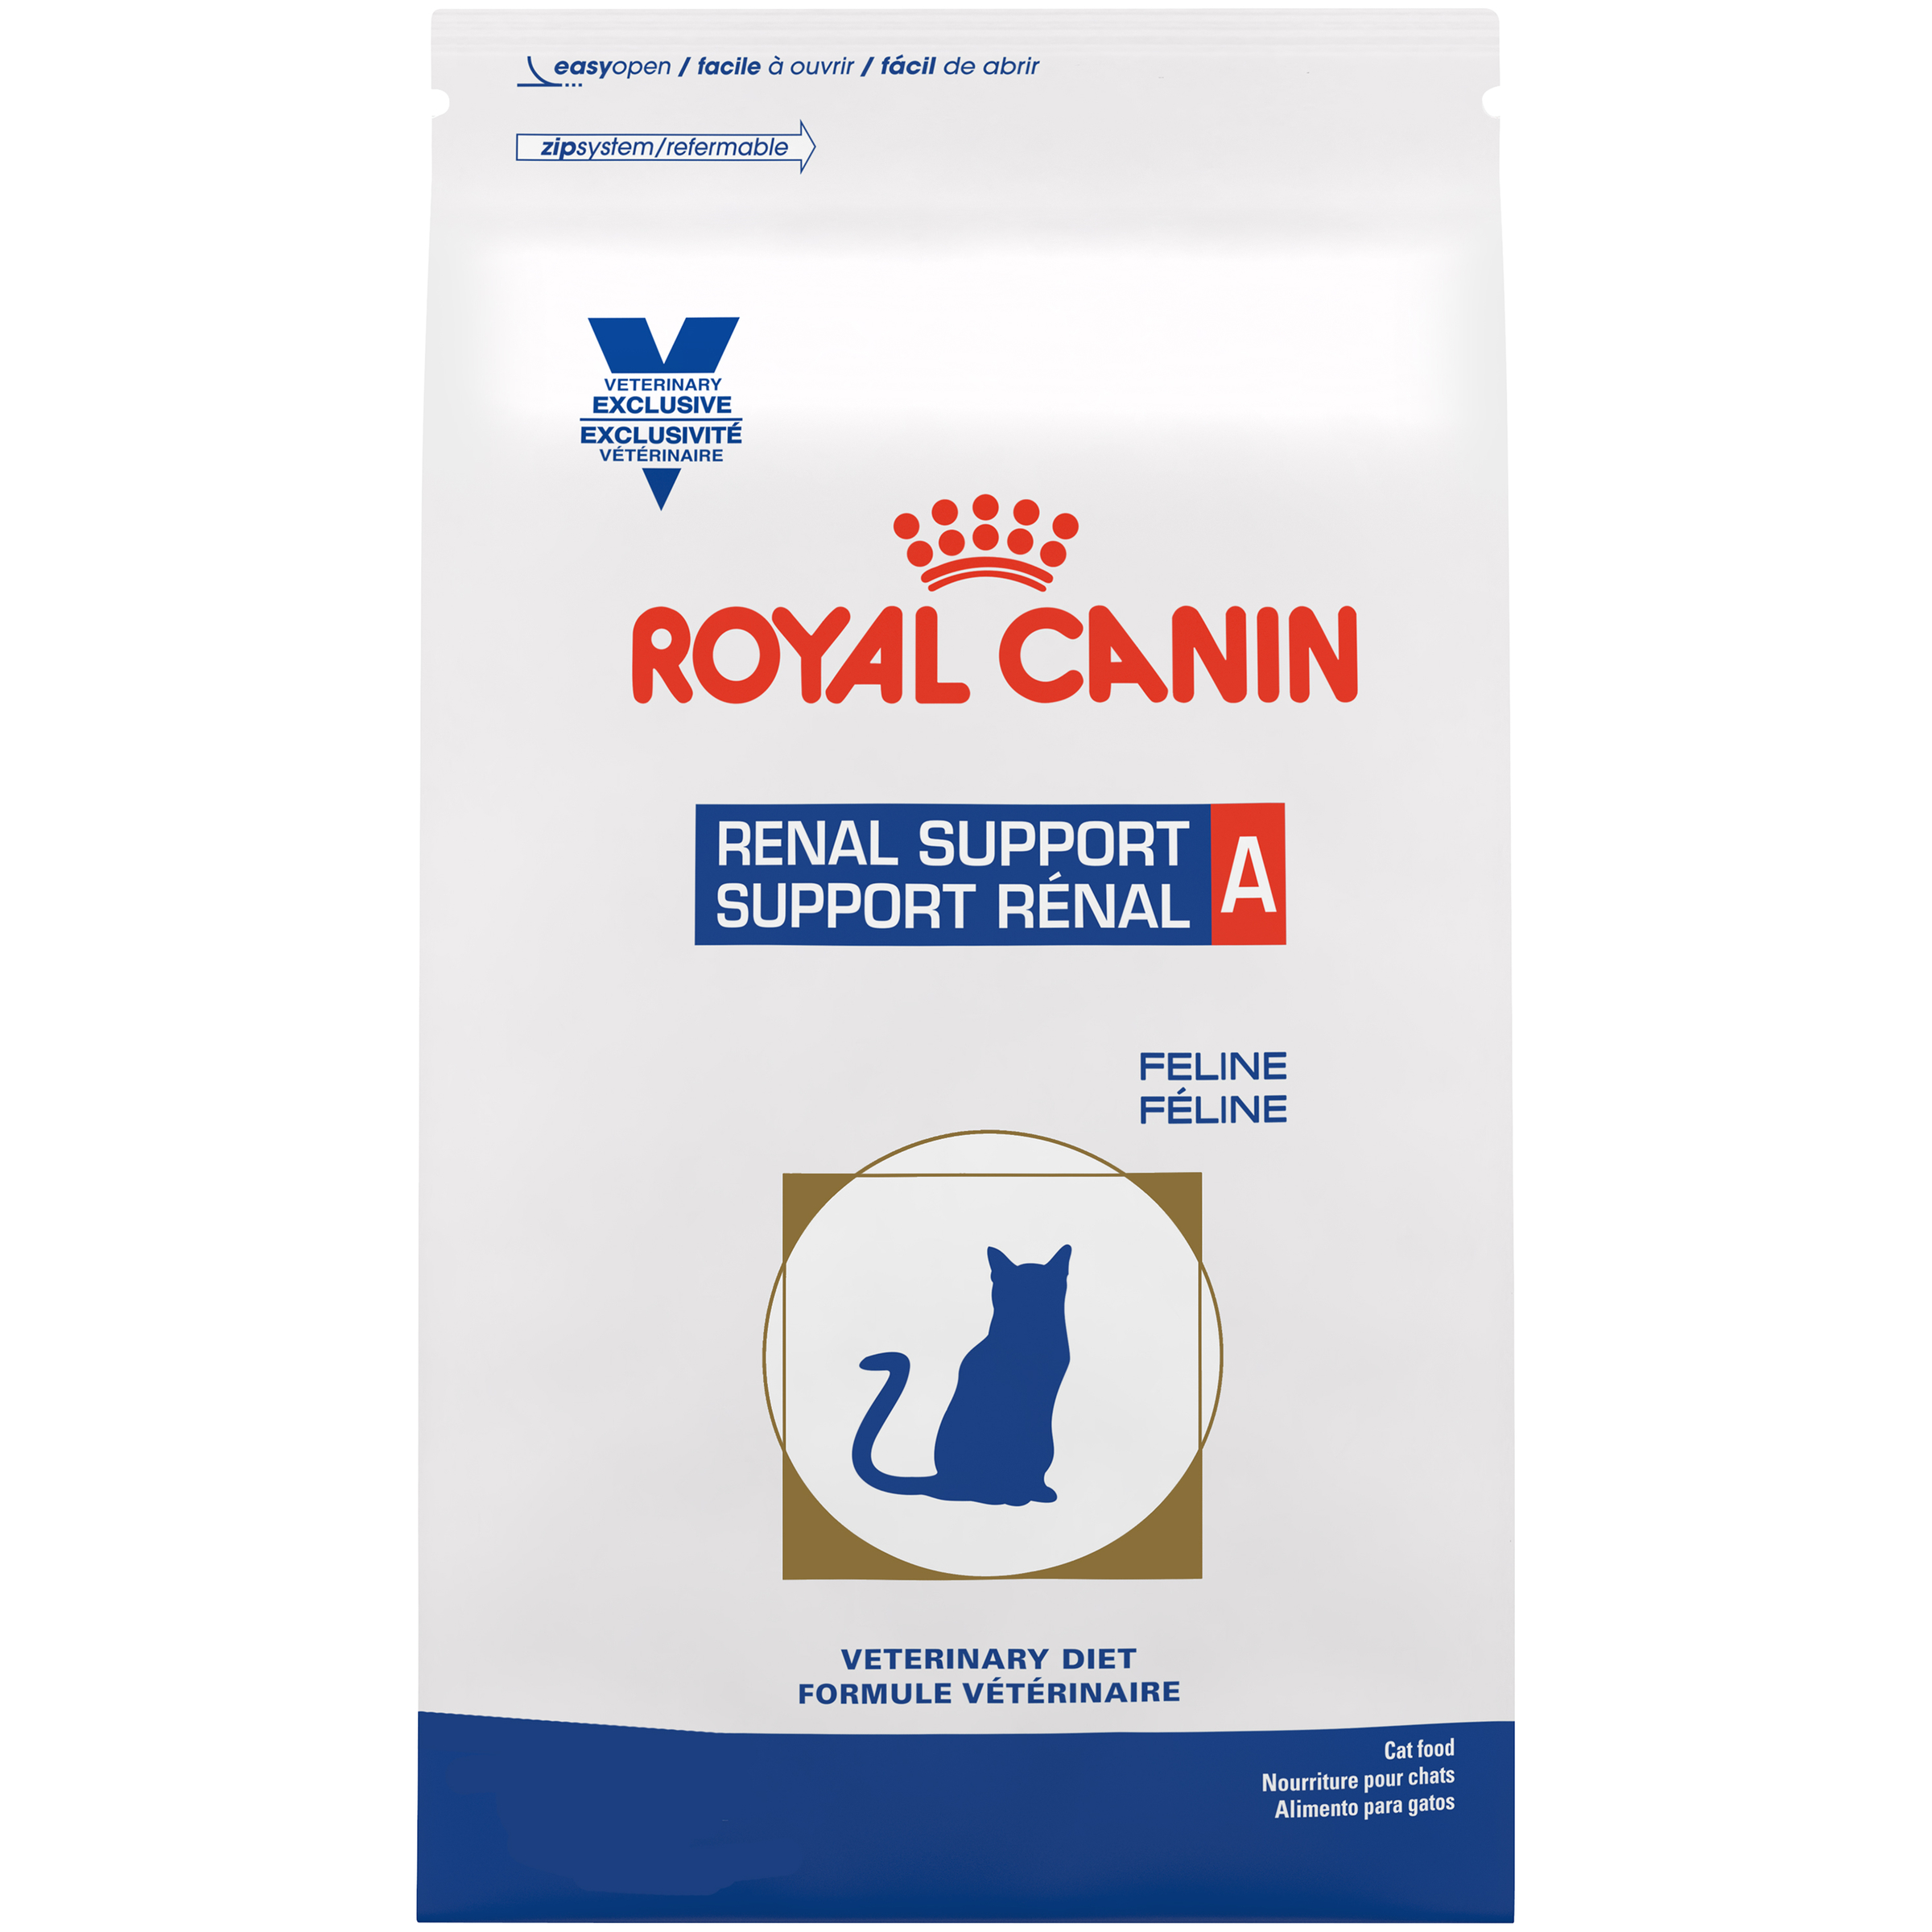 photo about Royal Canin Printable Coupon called Feline Renal Assistance A Dry Cat Meals